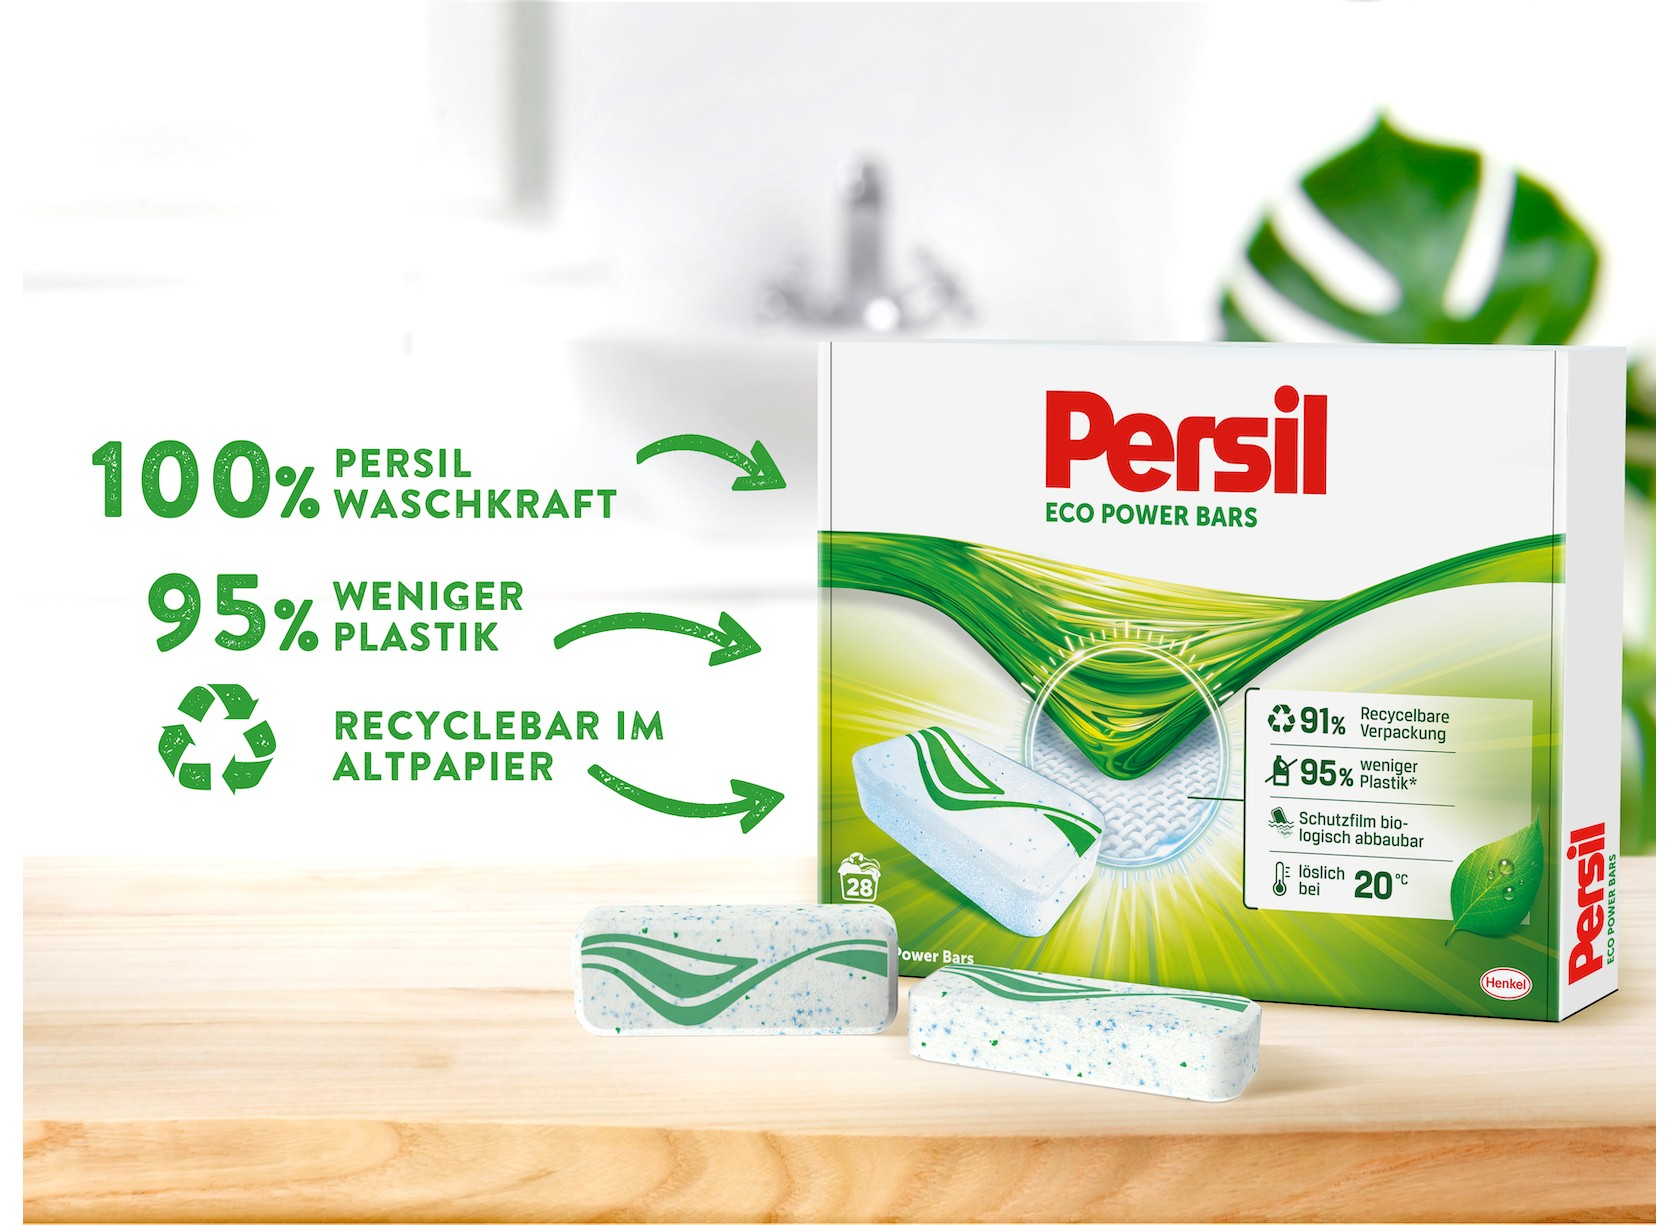 Persil Eco Power Bars